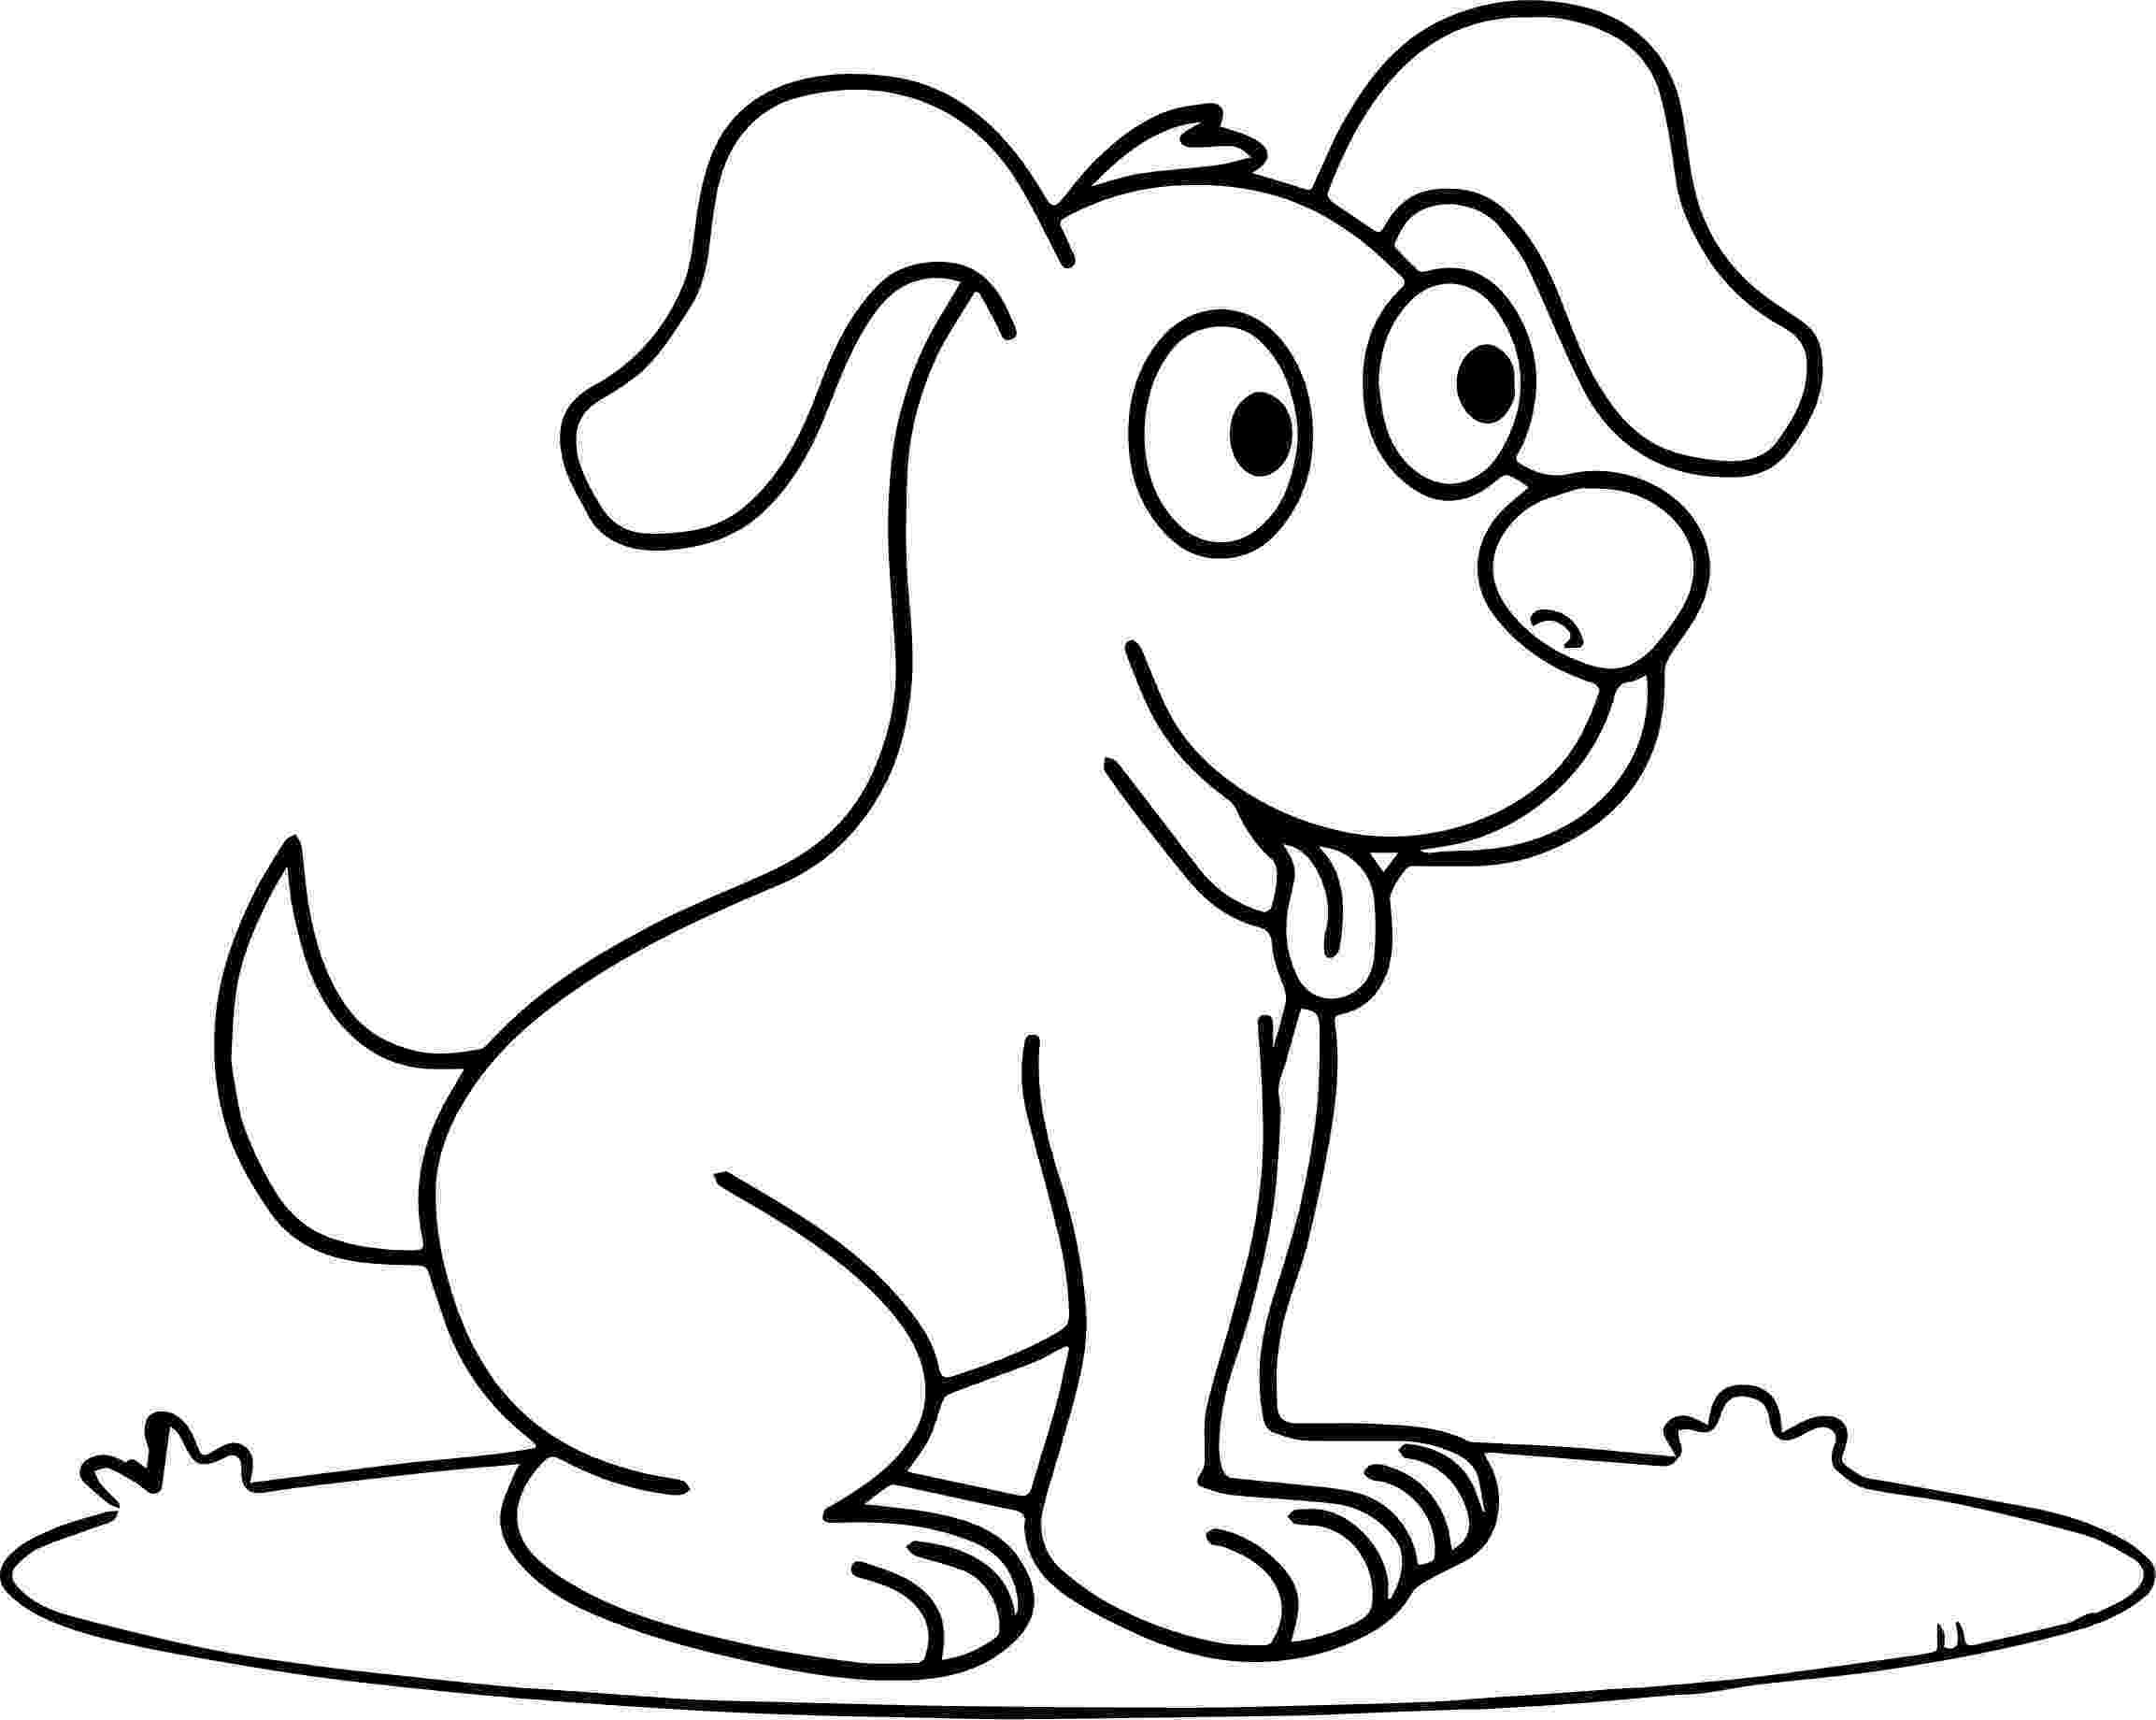 dogs to color cute happy smiling puppy puppy dog coloring page to color dogs